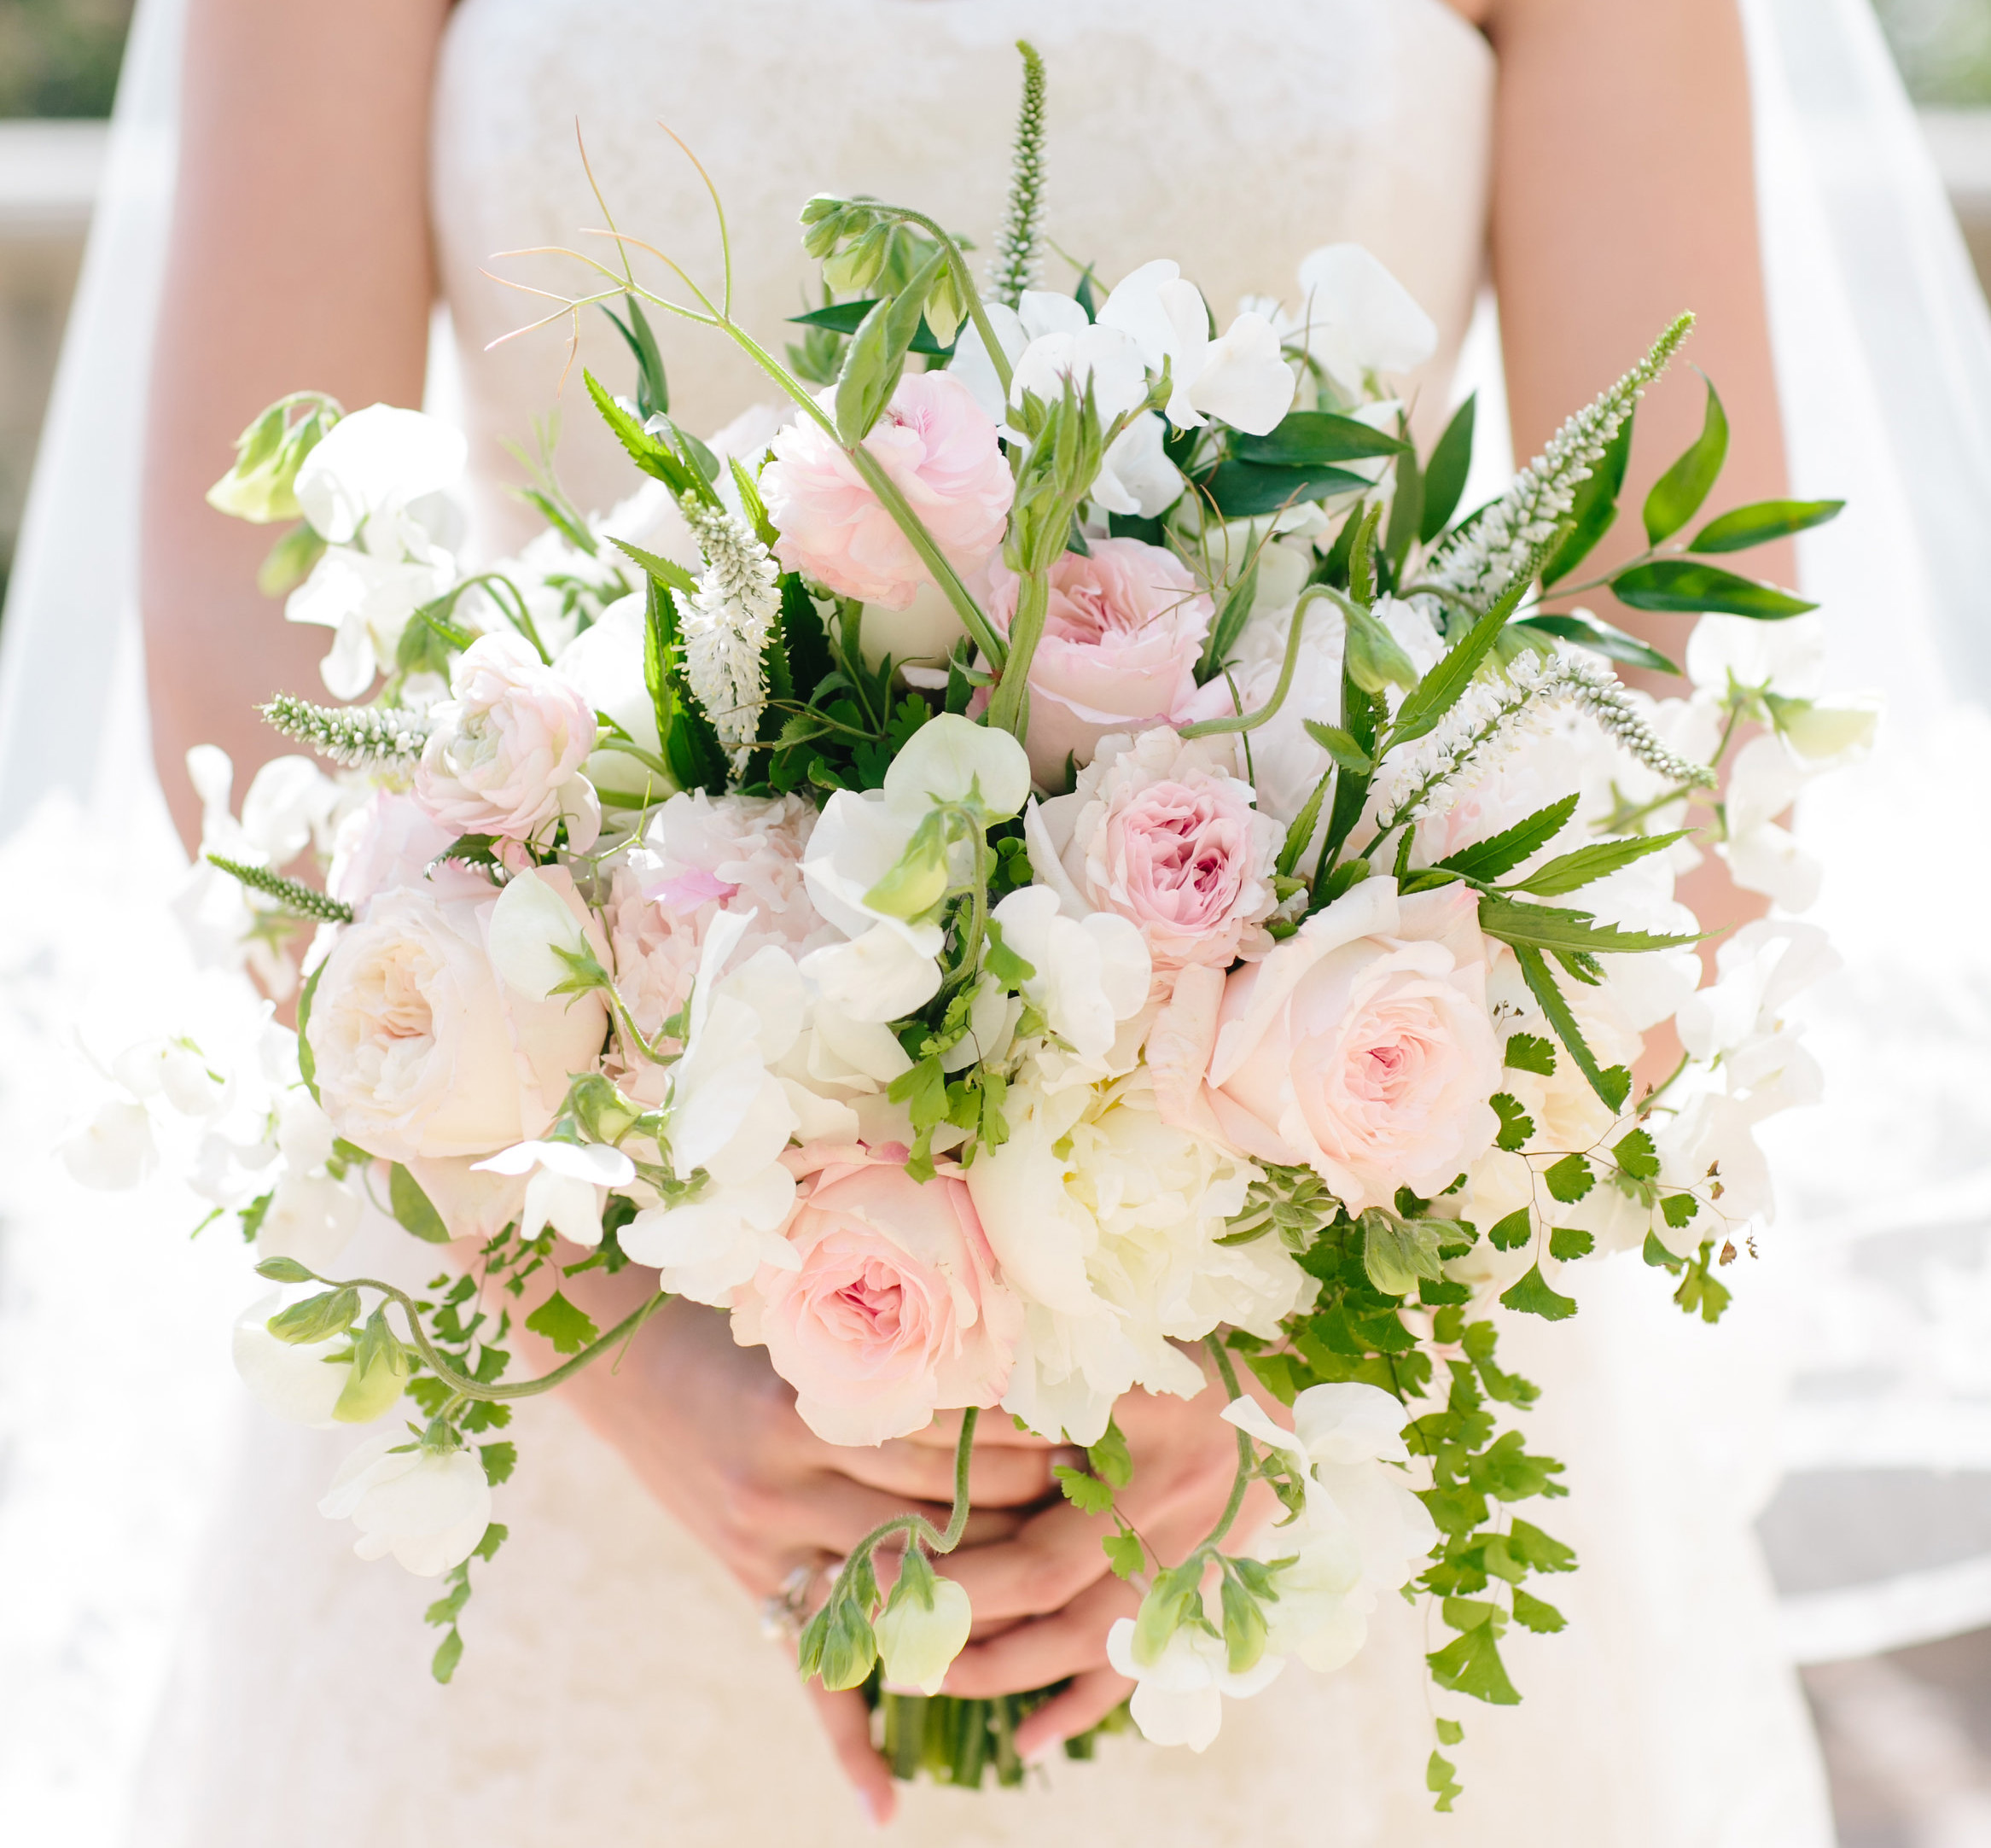 pink_and_white_bouquets_jdv2pb.jpg